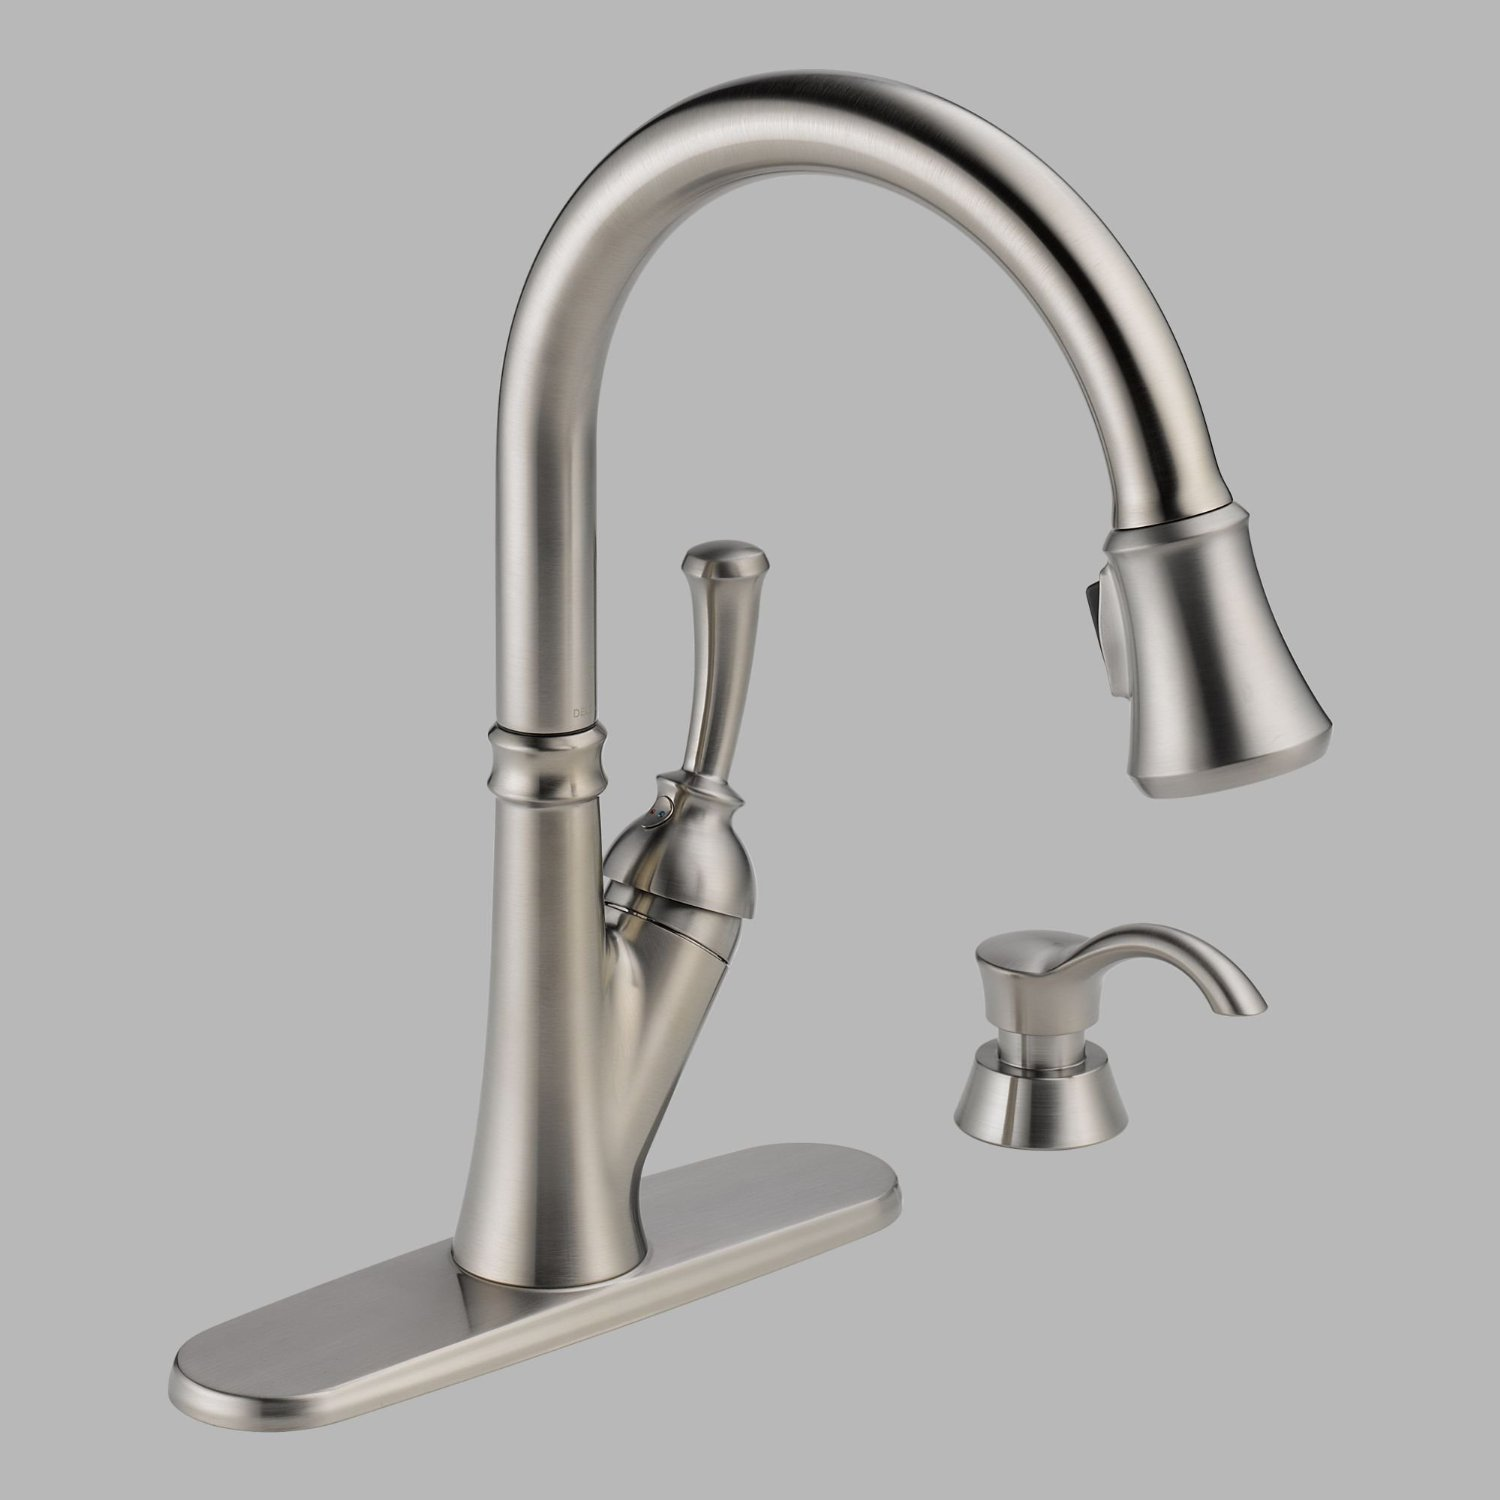 bronze faucet finish painted quartz recent bath single champagne vanity builders venture projects guest top handle kitchen inc sink faucets